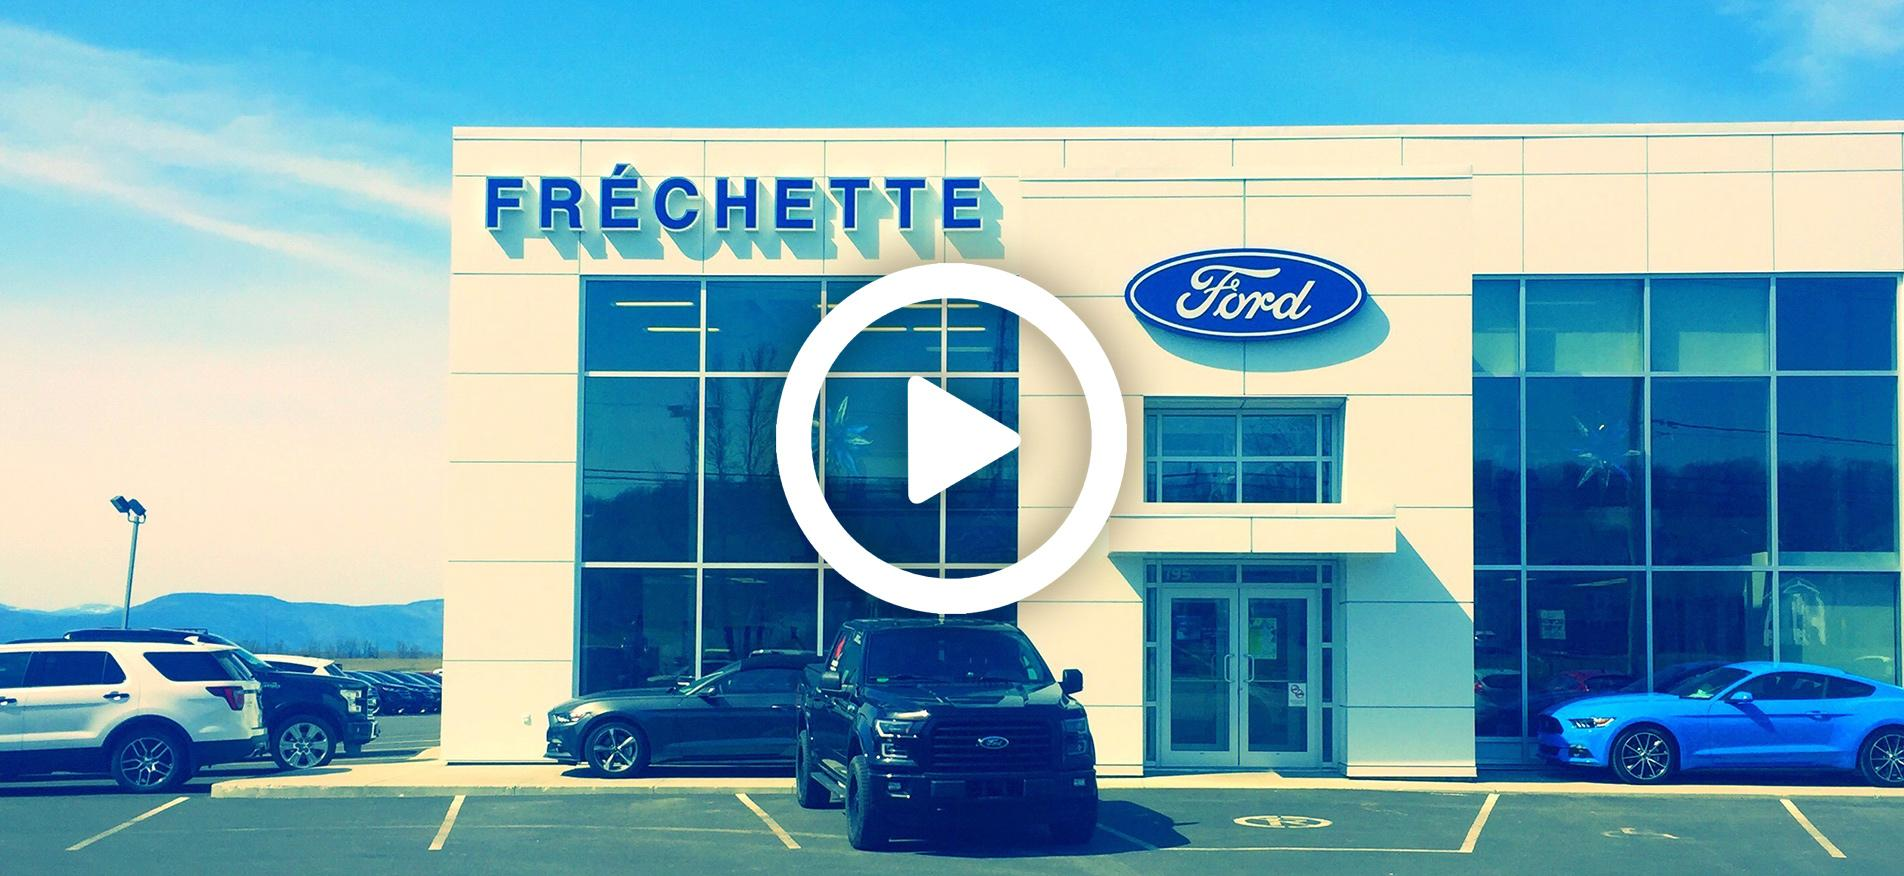 Fréchette Ford - YouTube Video